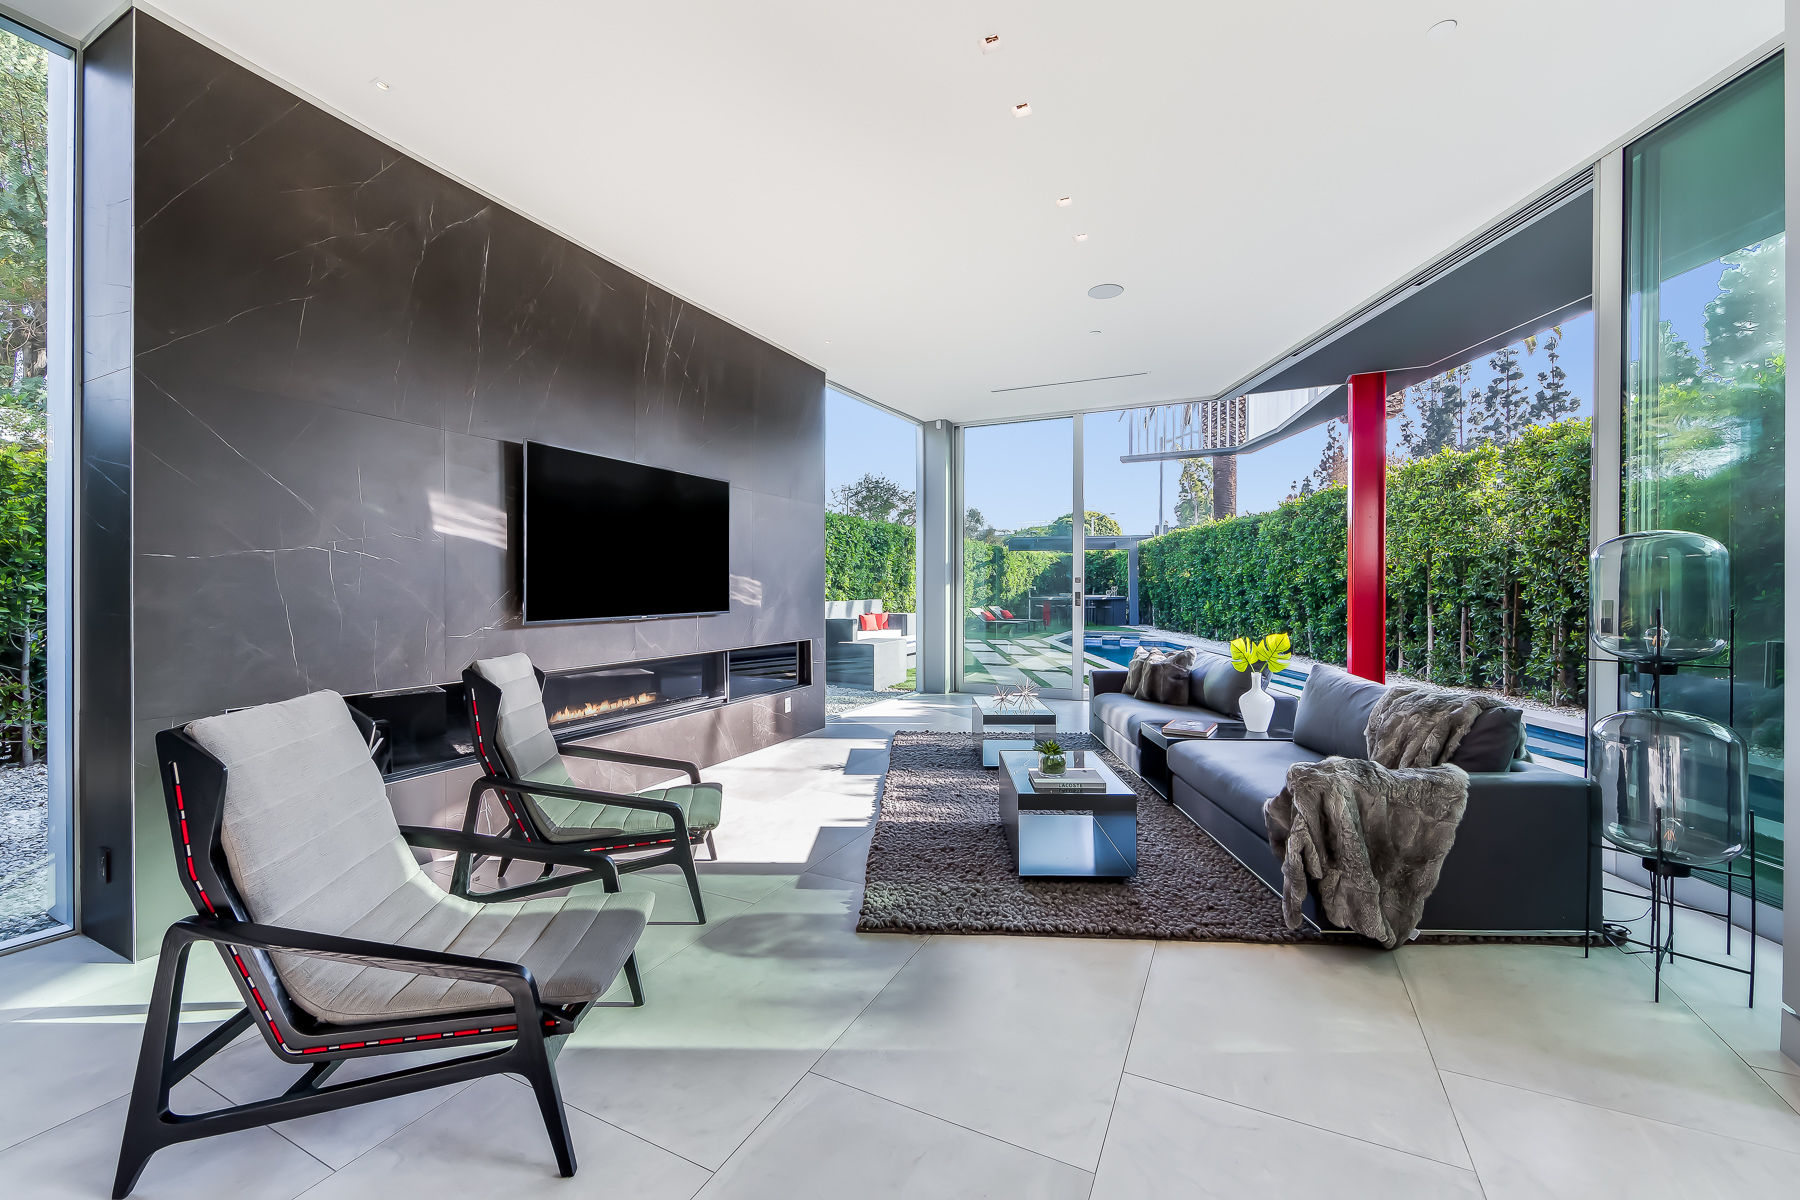 DI Group